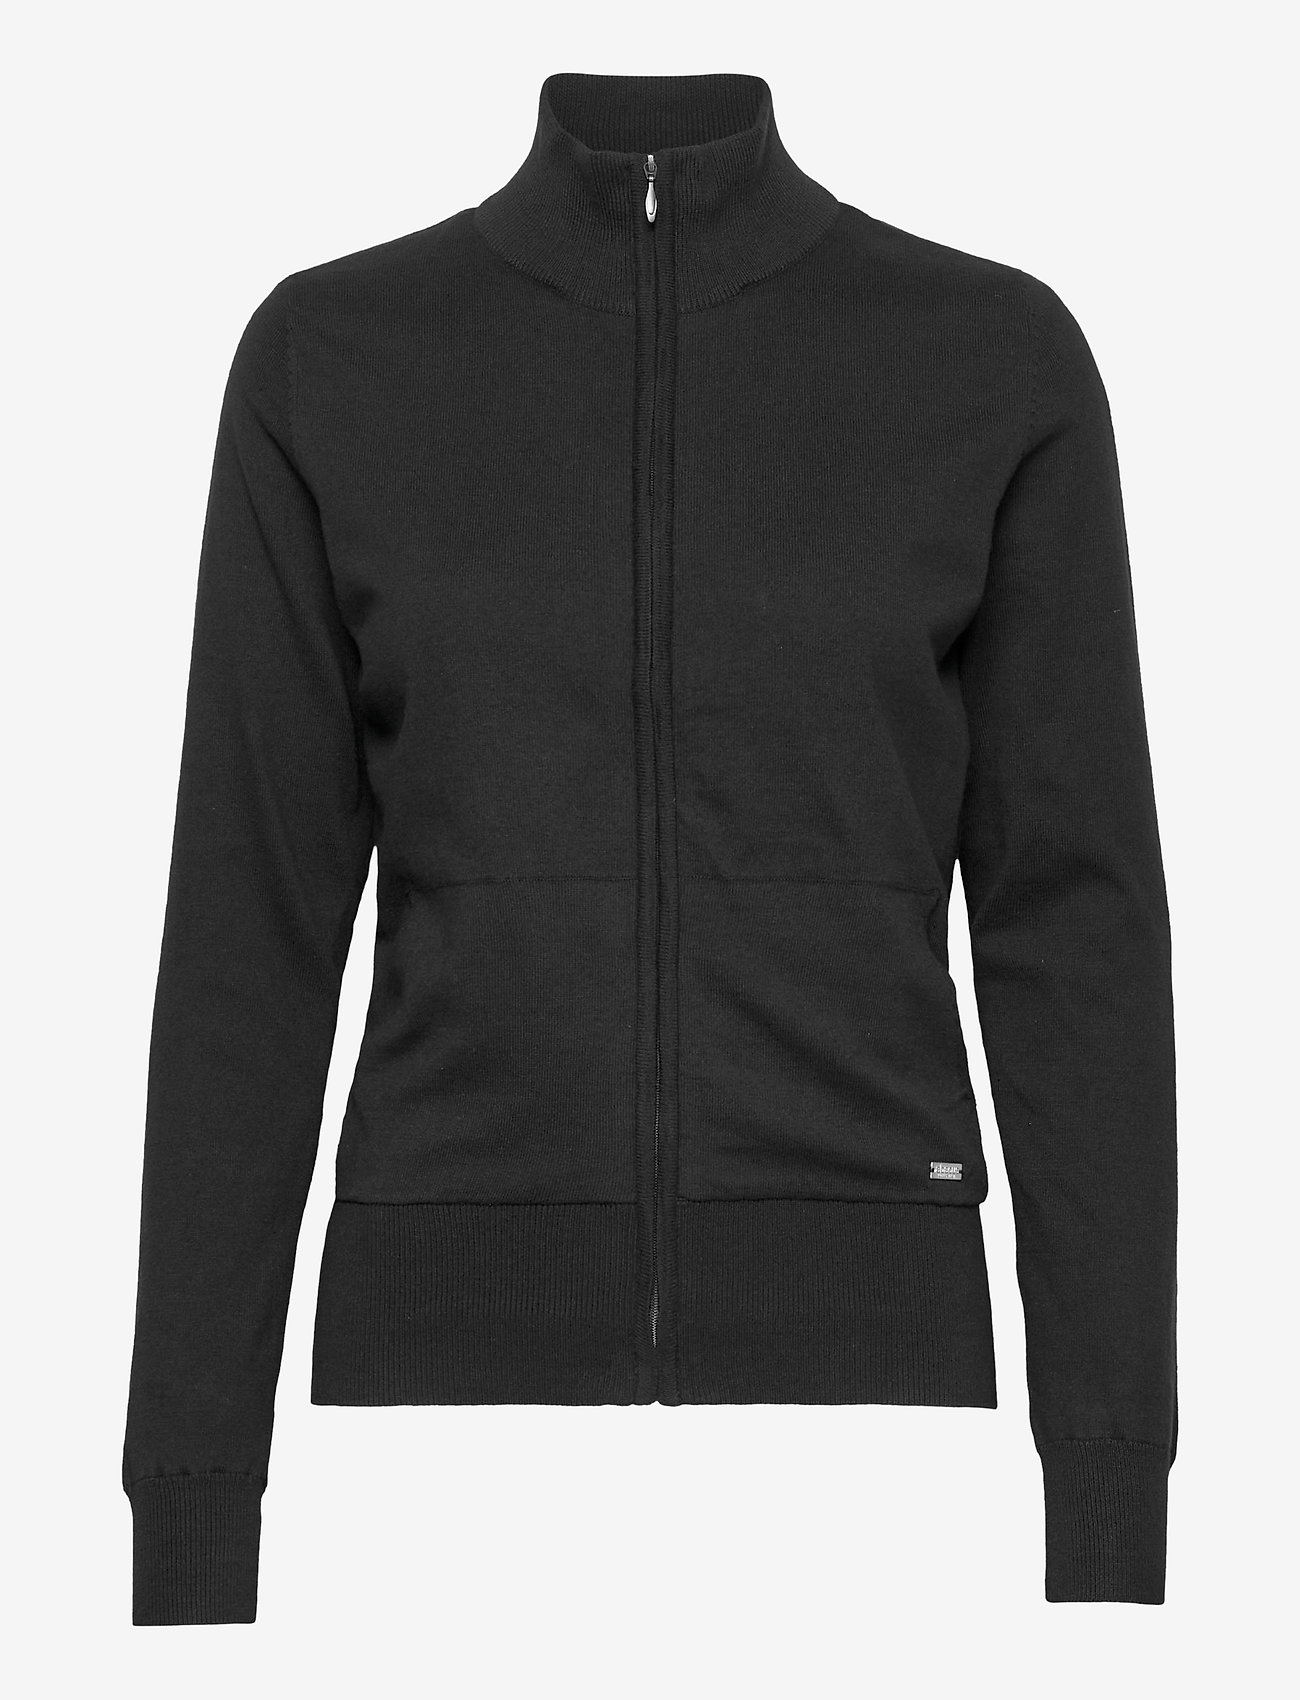 Abacus - Lds Dubson windstop cardigan - cardigans - black - 0